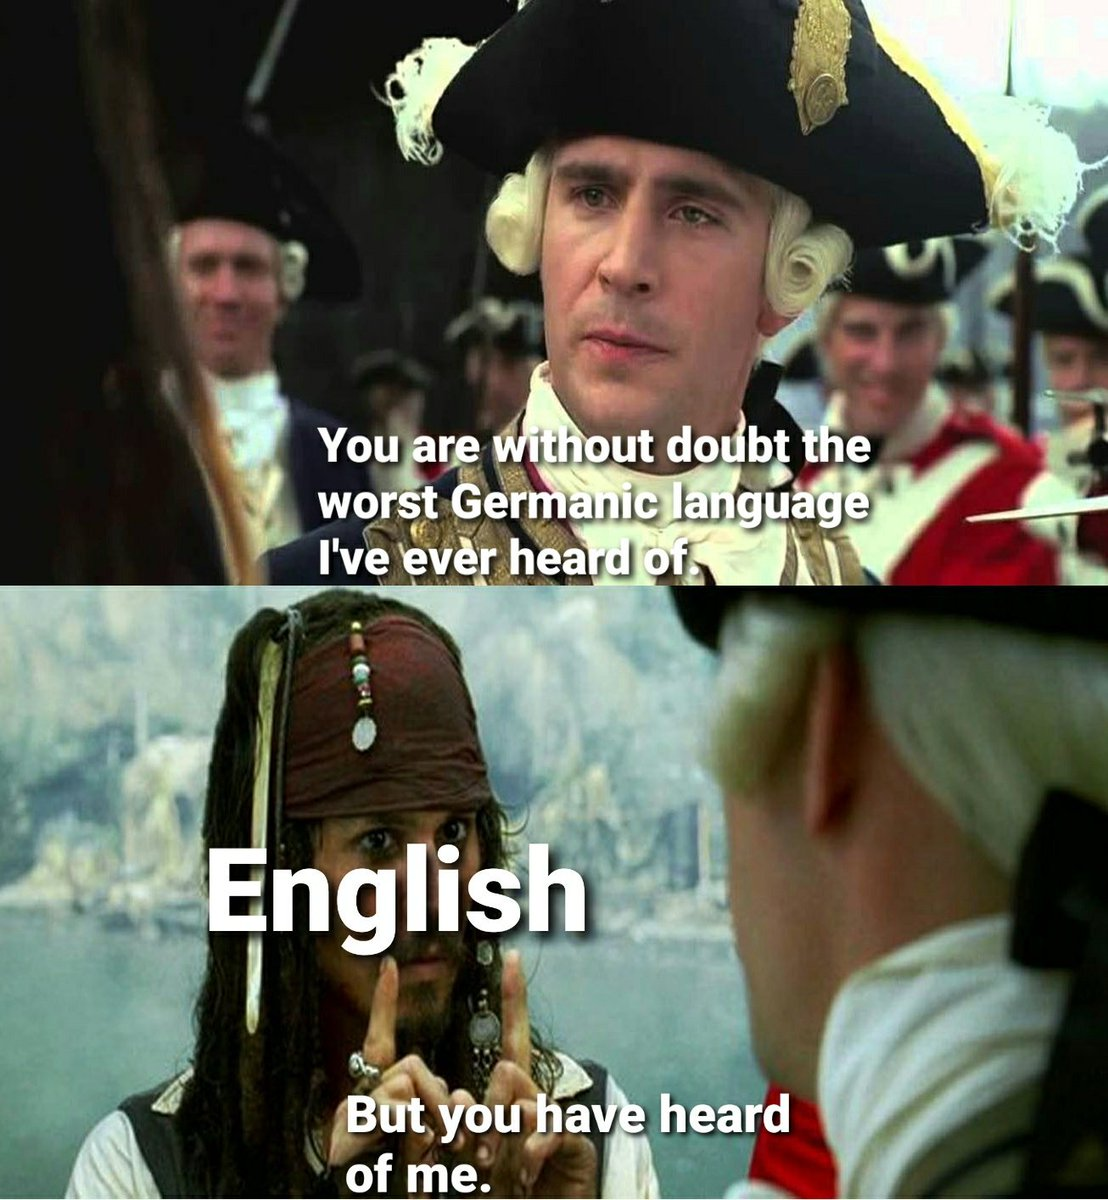 A Concise History of English, Part II